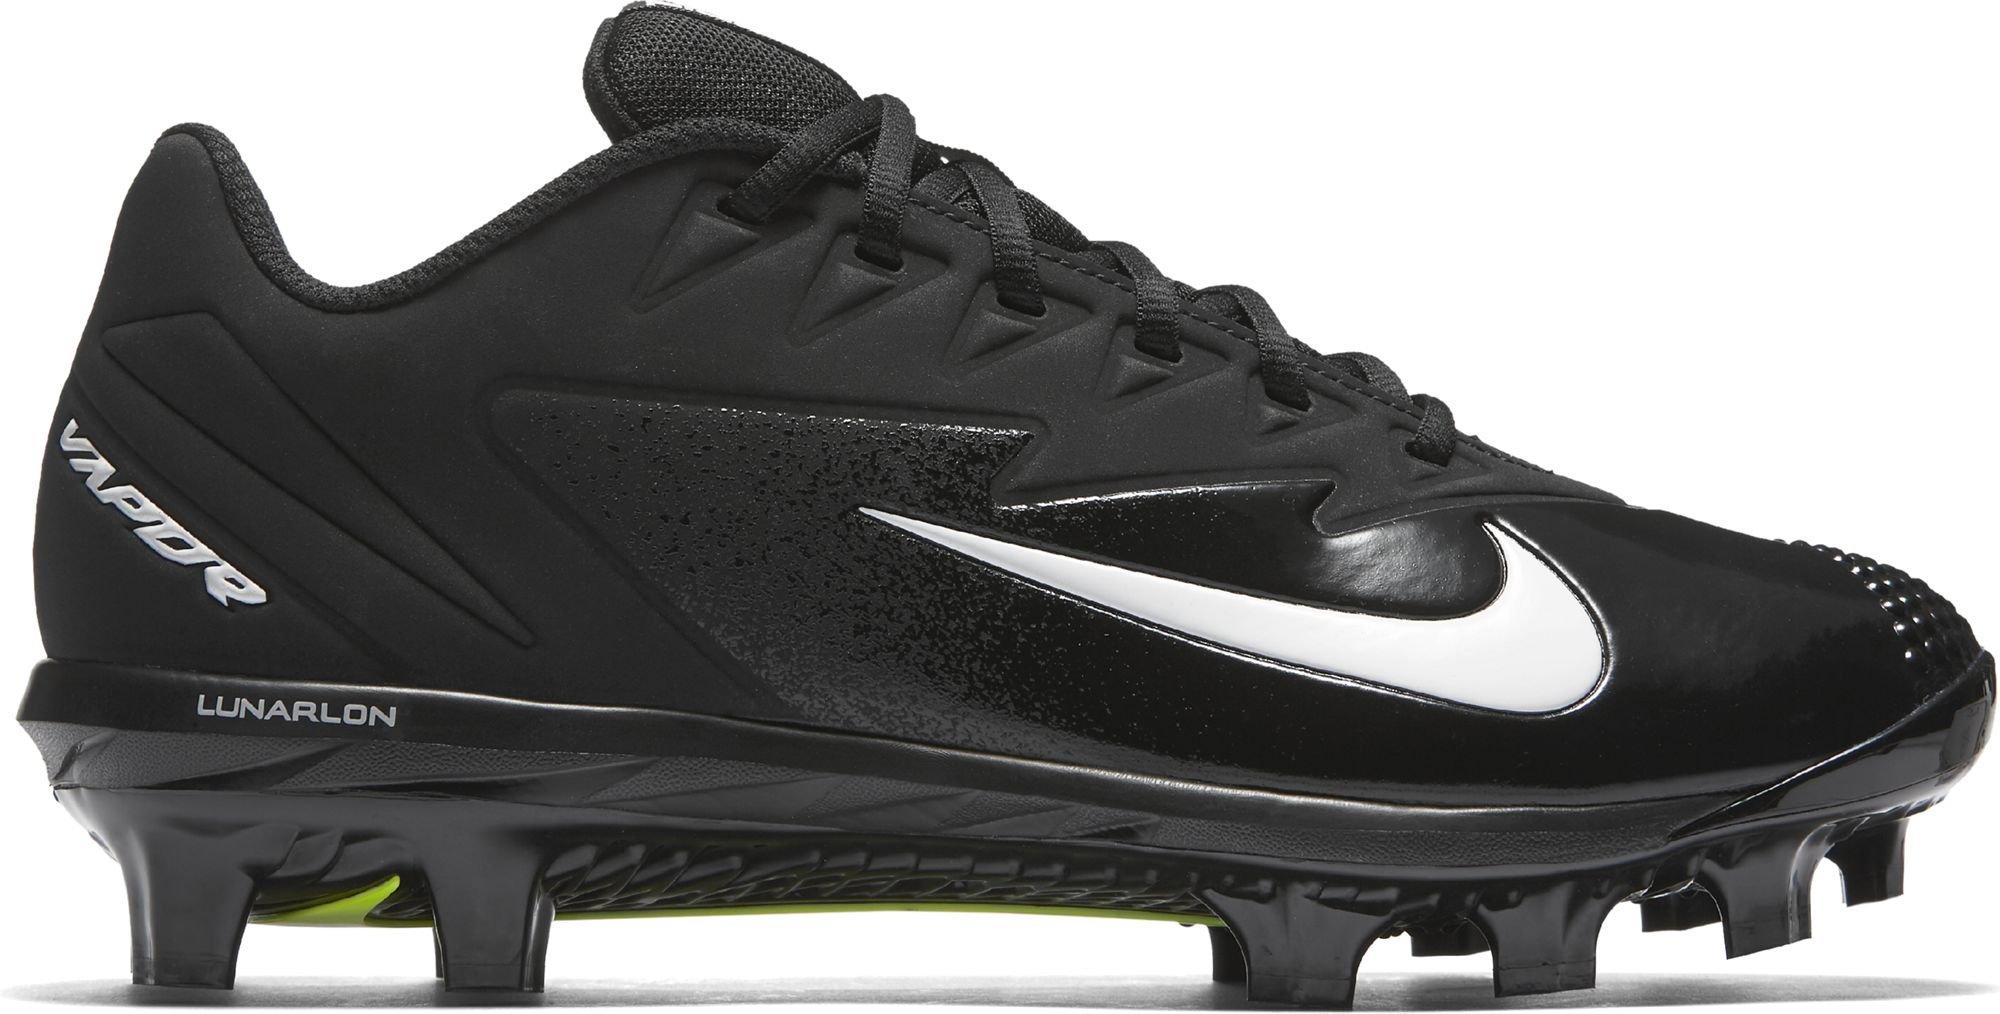 27f8a6ed5 Galleon - NIKE Men s Vapor Ultrafly Pro MCS Baseball Cleat Black White Anthracite  Size 11.5 M US